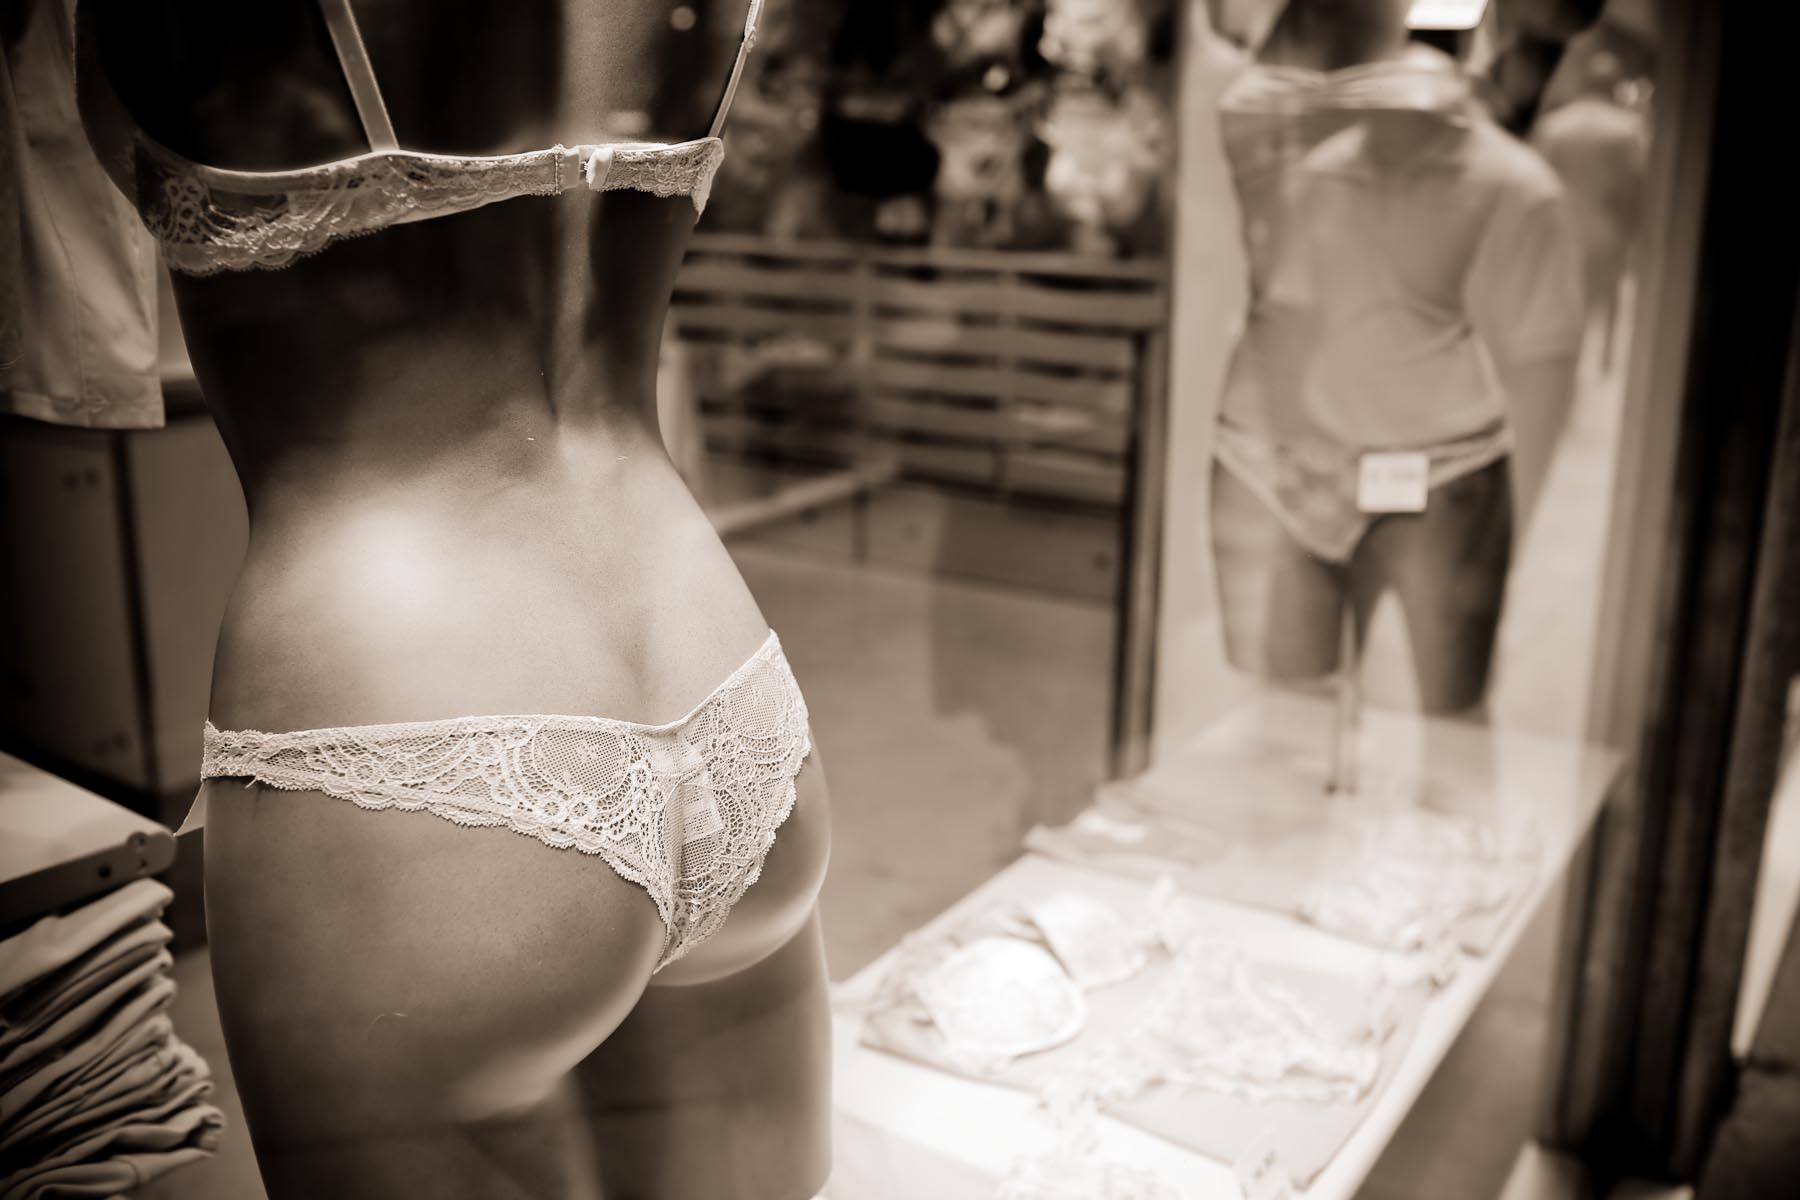 Lingerie Shop Window, Milan Italy